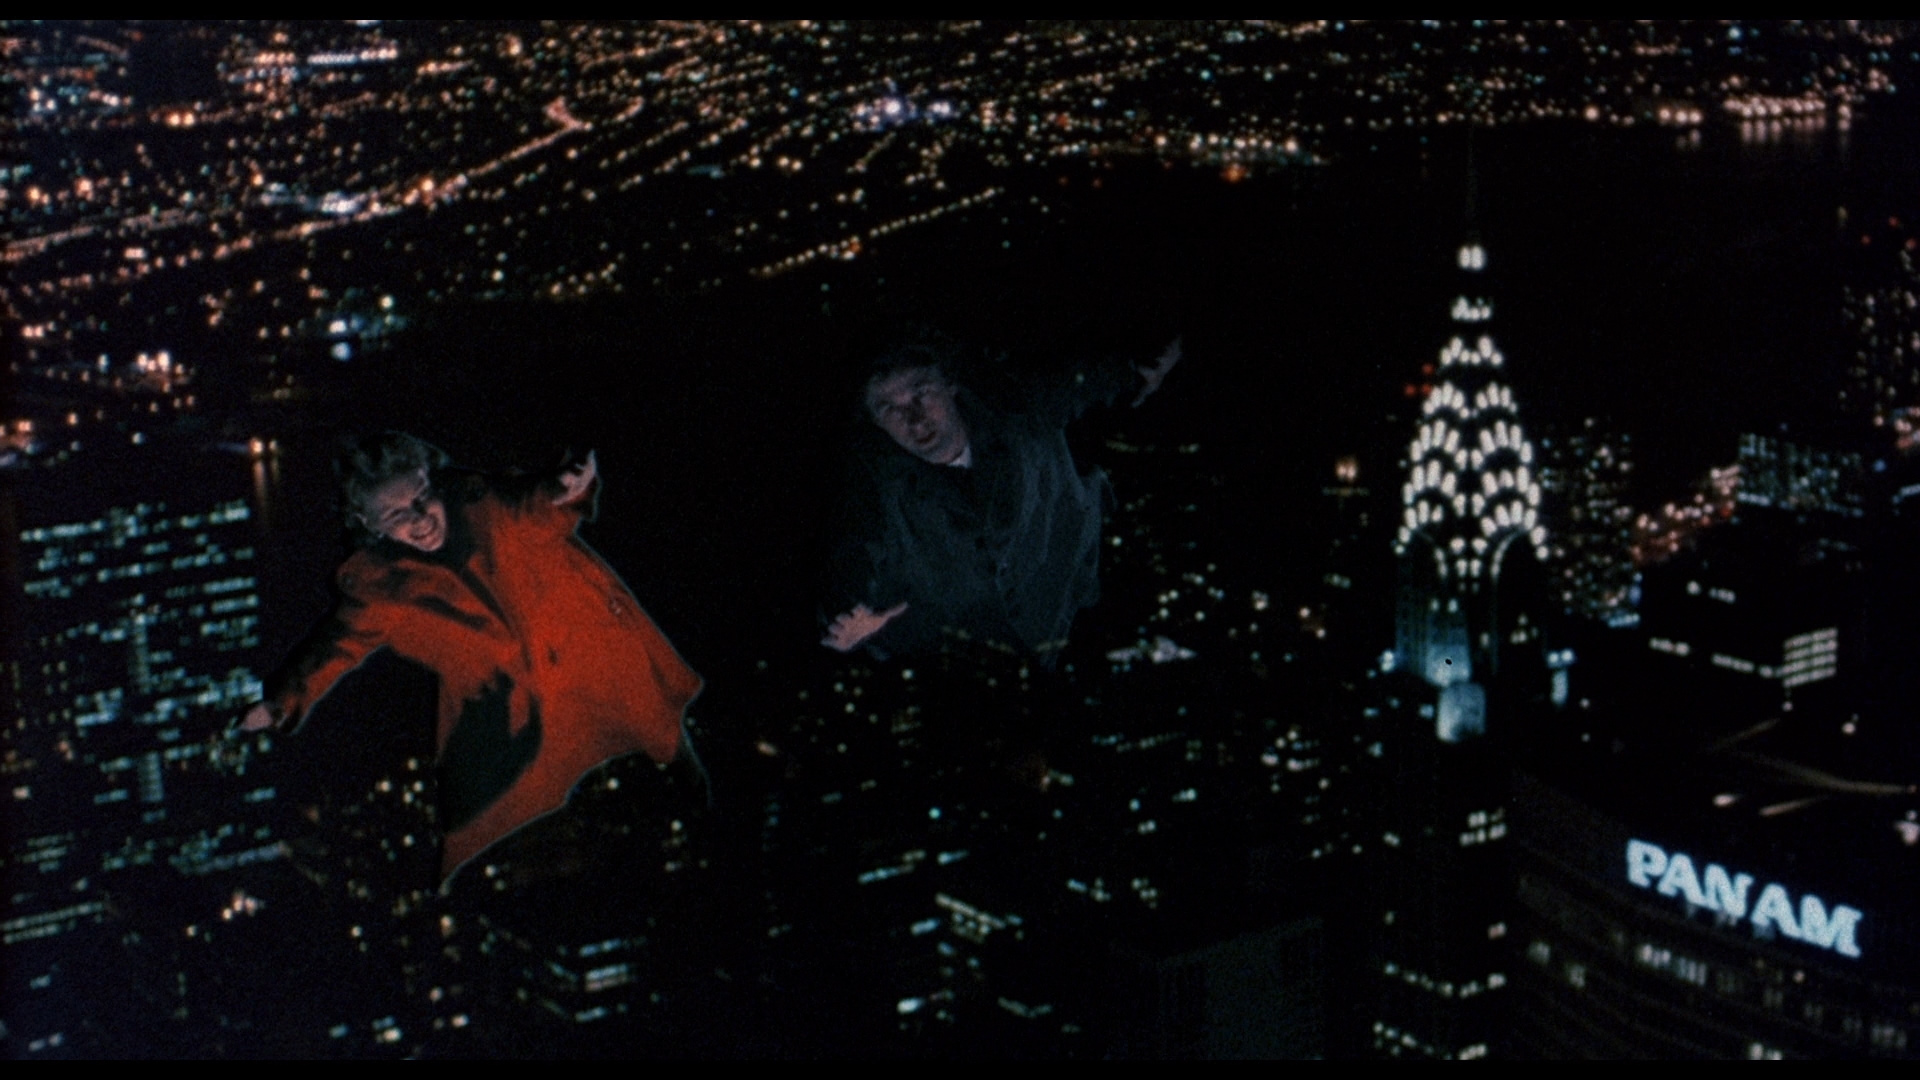 Alice (Mia Farrow) is taken on a flight through the night skies of Manhattan by a ghostly Alec Baldwin in Alice (1990)